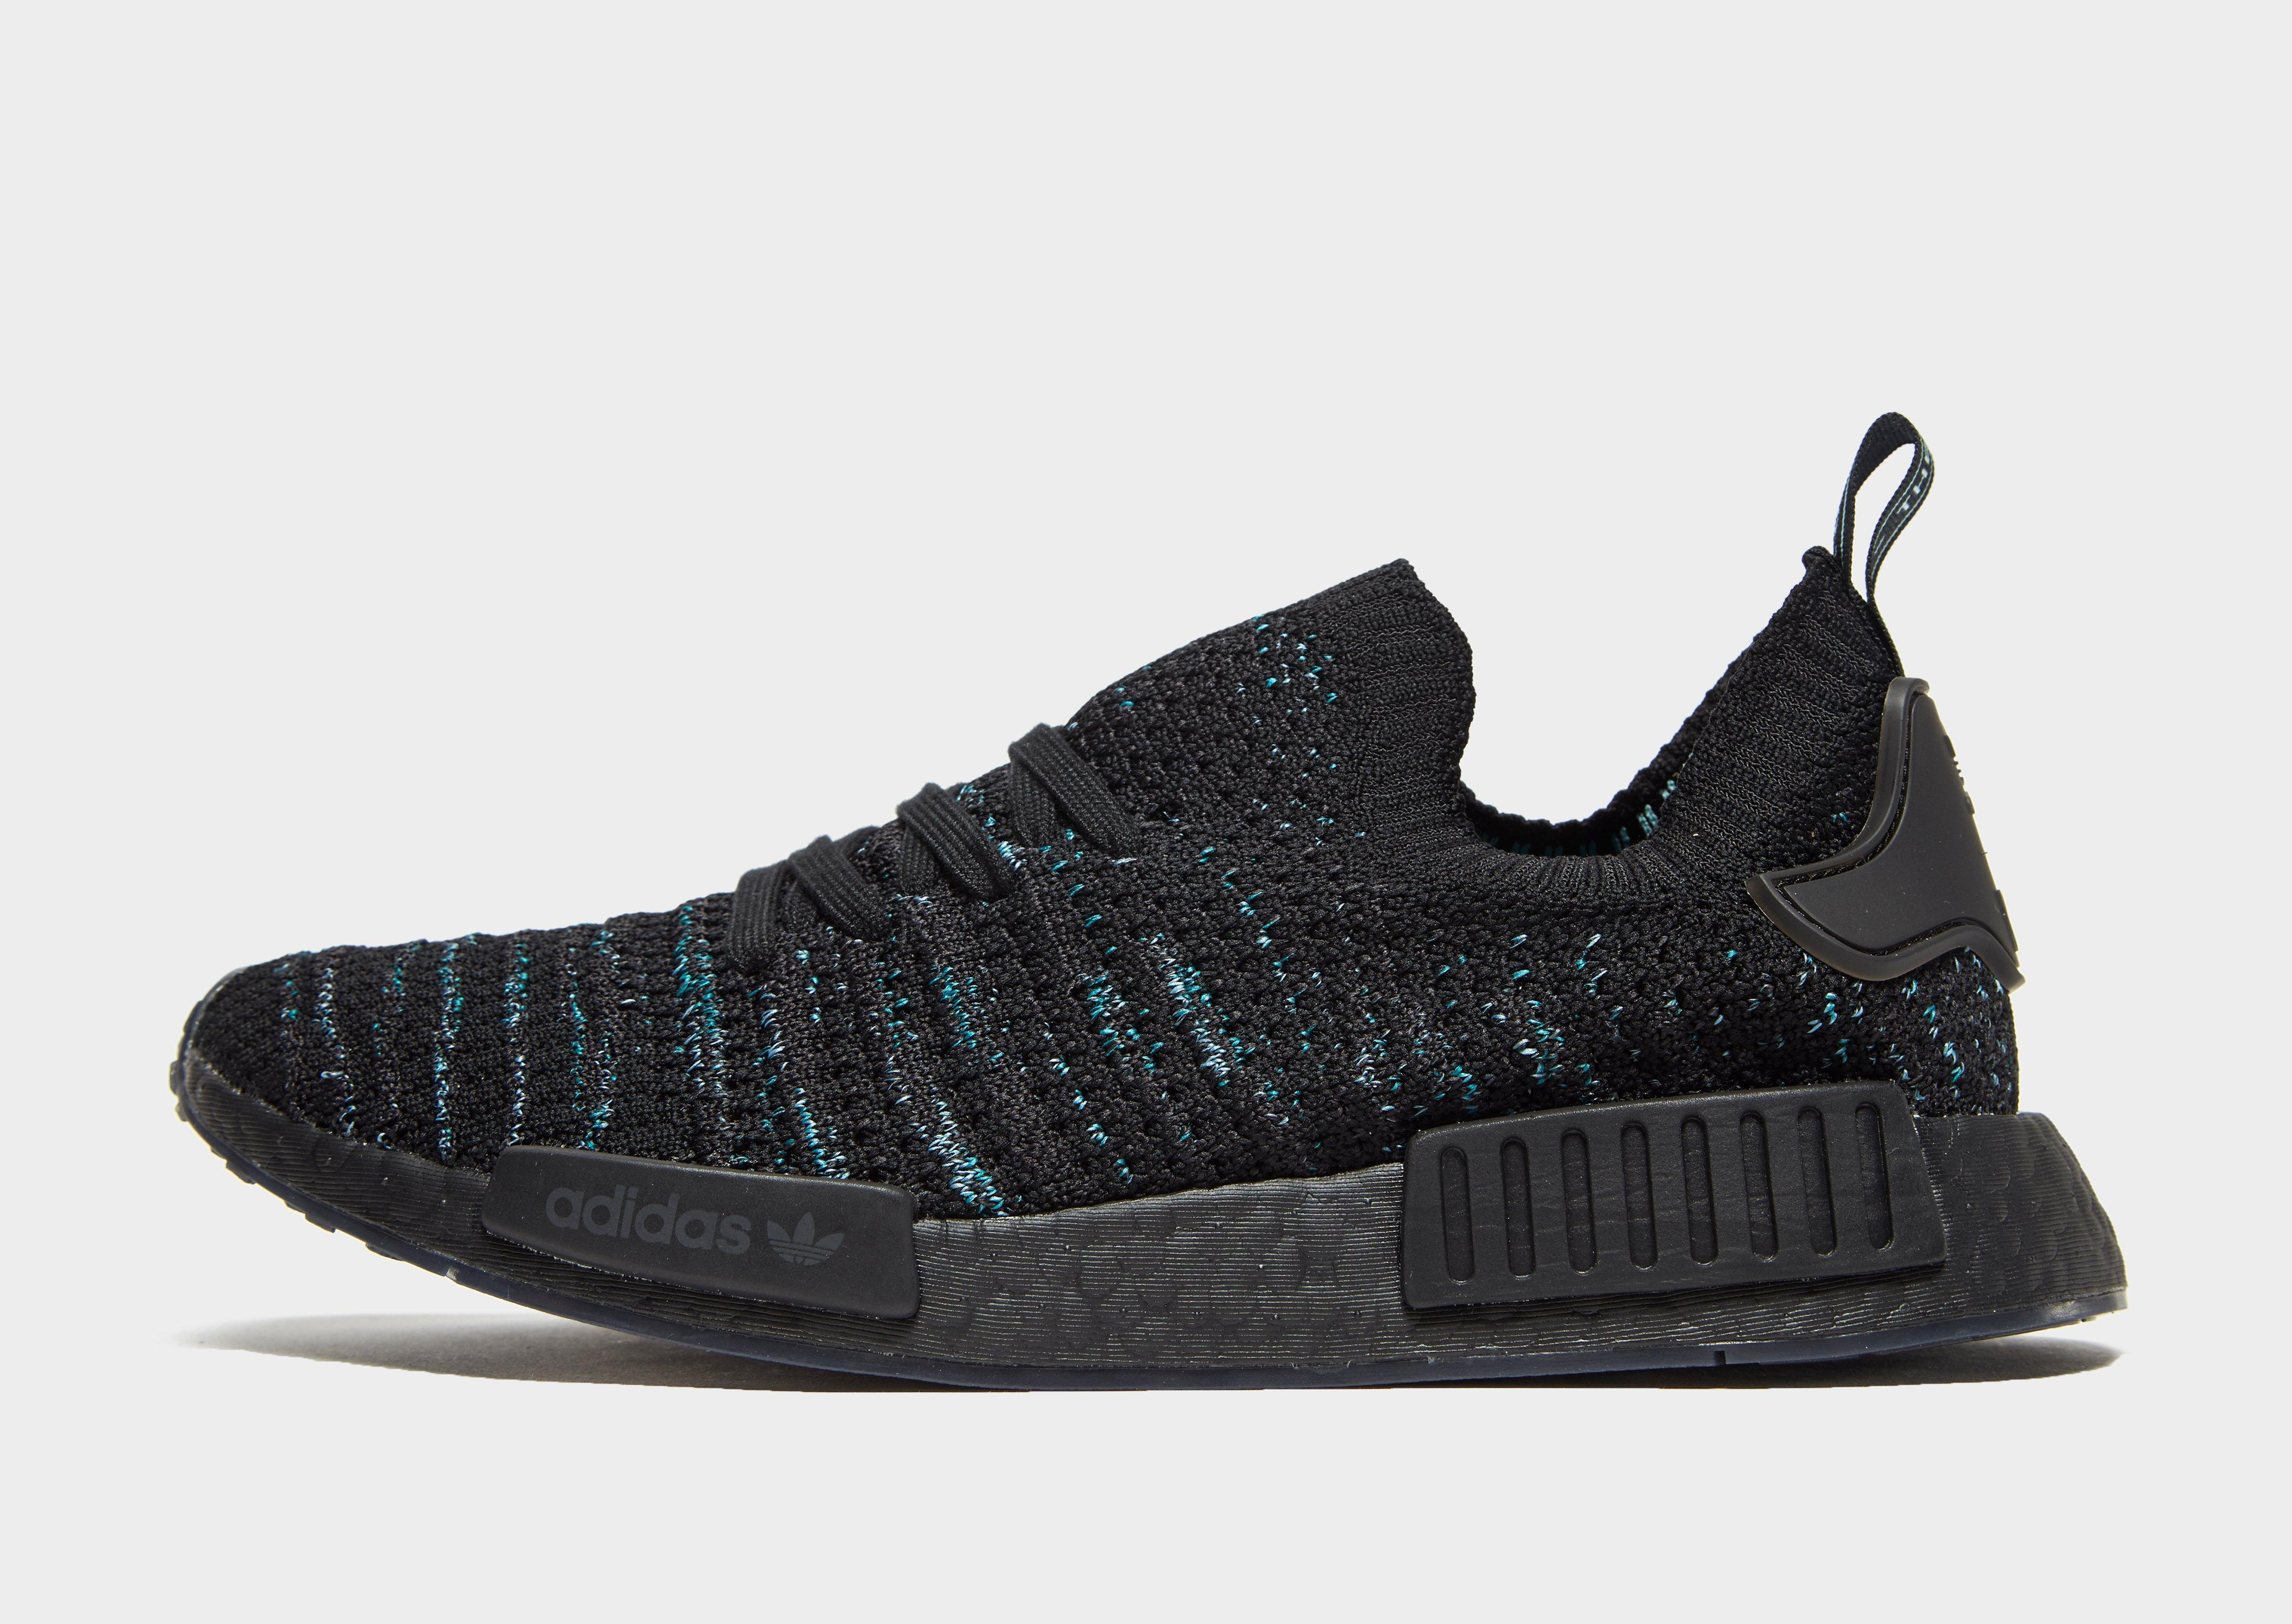 63626ffdc Lyst - adidas Originals Nmd r1 Stlt Parley in Black for Men